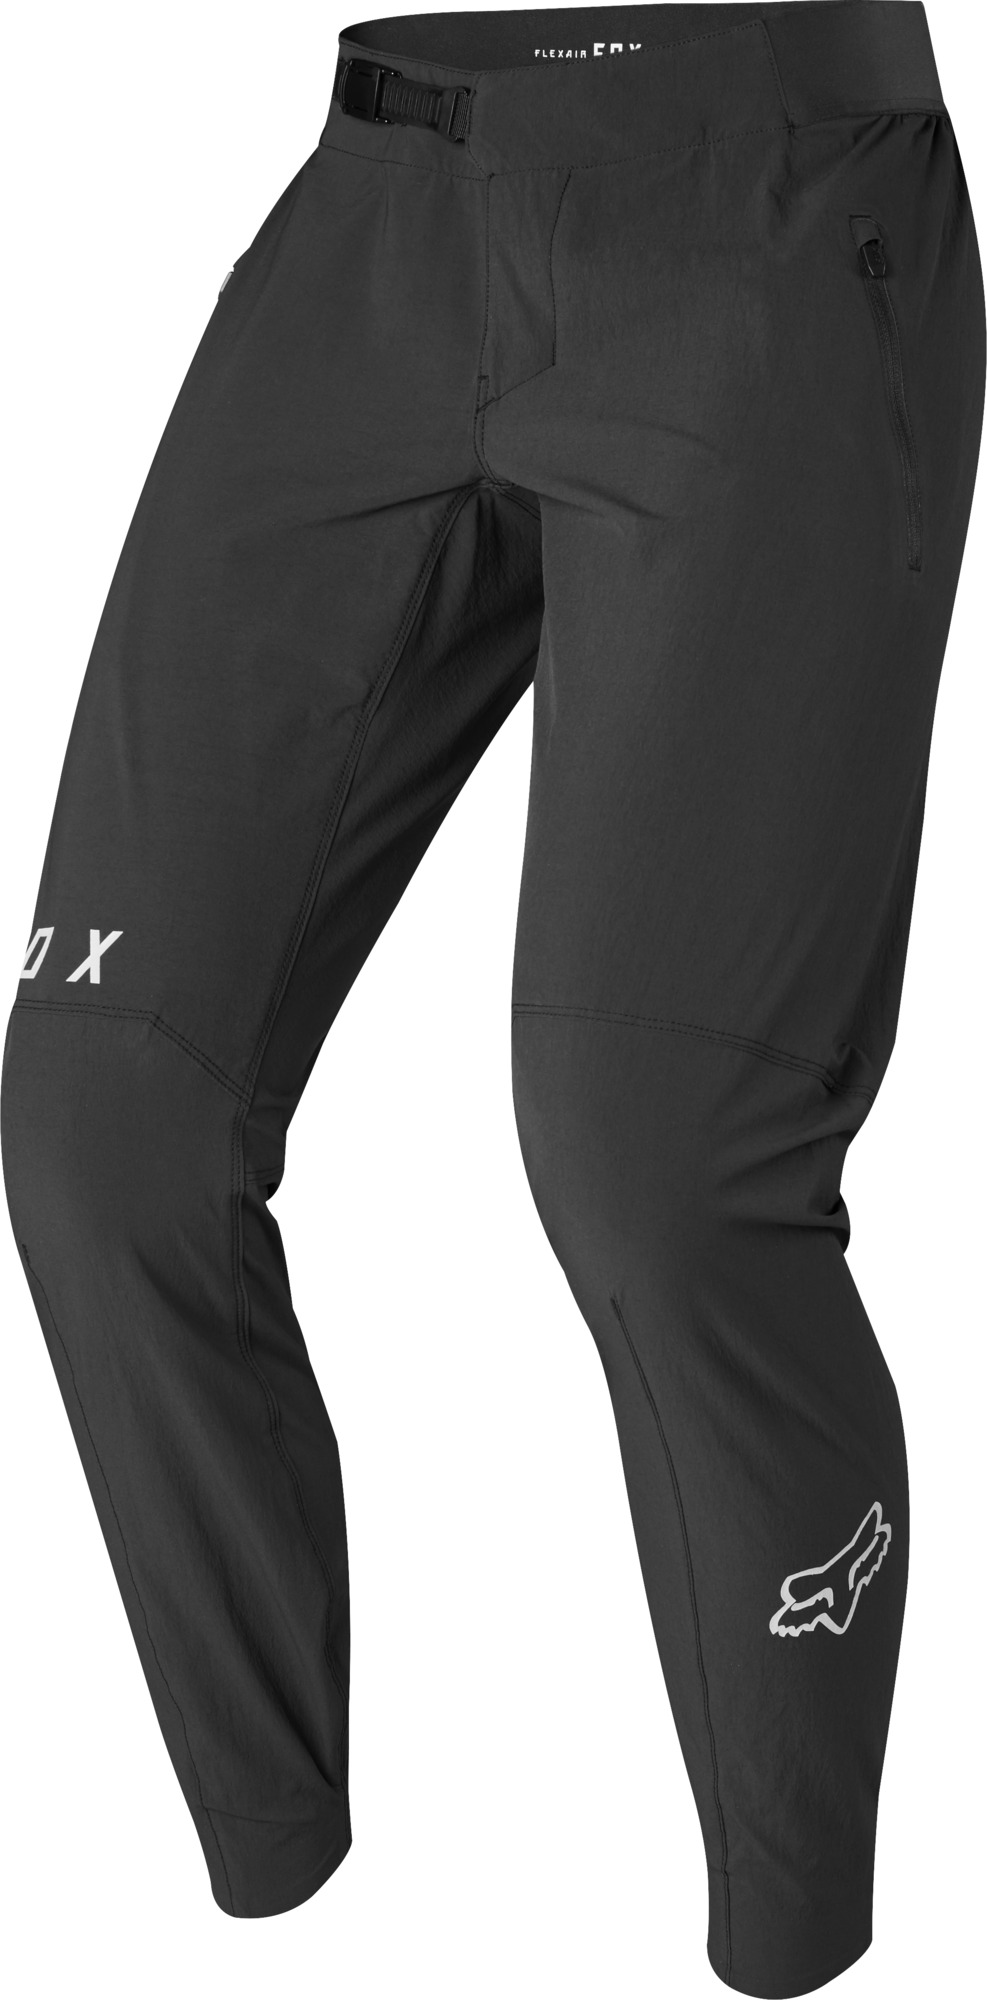 Fox Flexair Mtb Pants Black